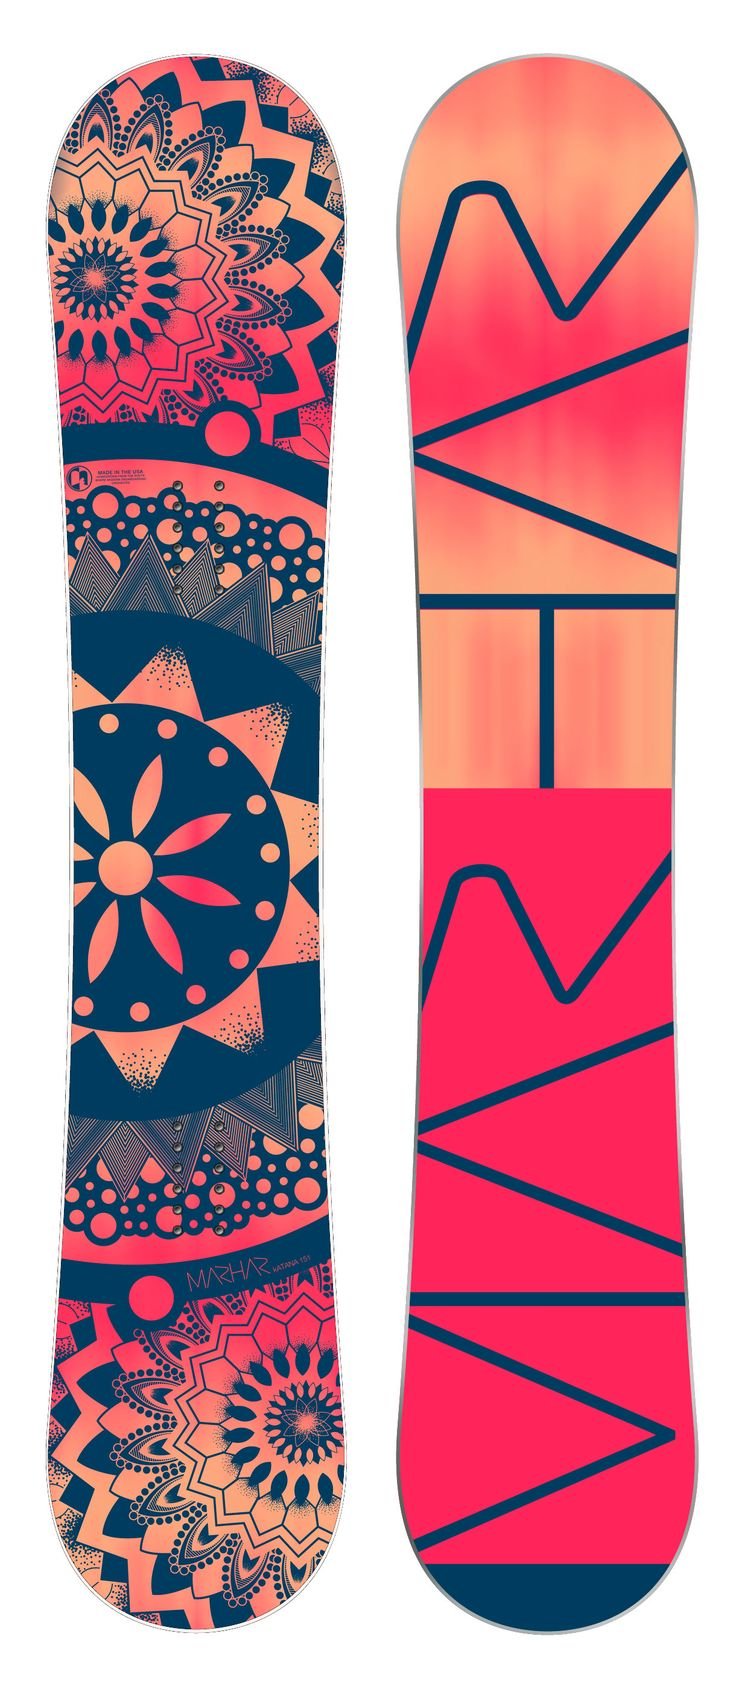 """Katana - Womens Freestyle Snowboard. The Katana is a high end womens park freestyle snowboard. Zero Camber with our Sideways Rocker 3D Base creates pop that will send you to the moon and makes for super easy spins. It has a soft tip and tail for even the most tweaked out butters. The Dual Arc edges allow for laying trenches with those hard carves while the Sideways Rocker creates a loose catch free experience. This deck is perfect for those who like to """"play"""" on their board."""